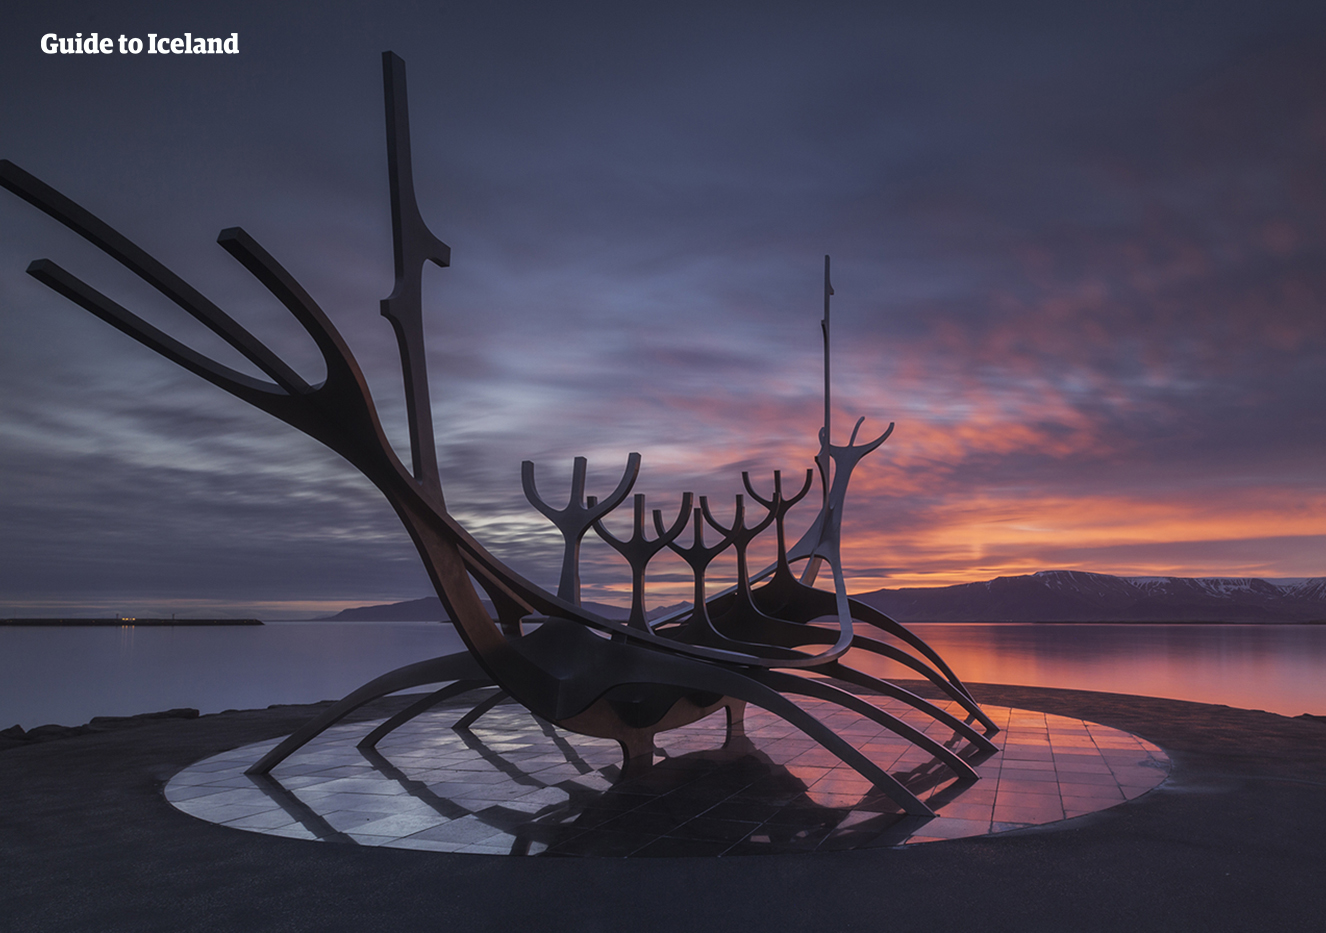 Guided 12 Day Summer Vacation Package of the Complete Ring Road of Iceland with Snaefellsnes Peninsu - day 12